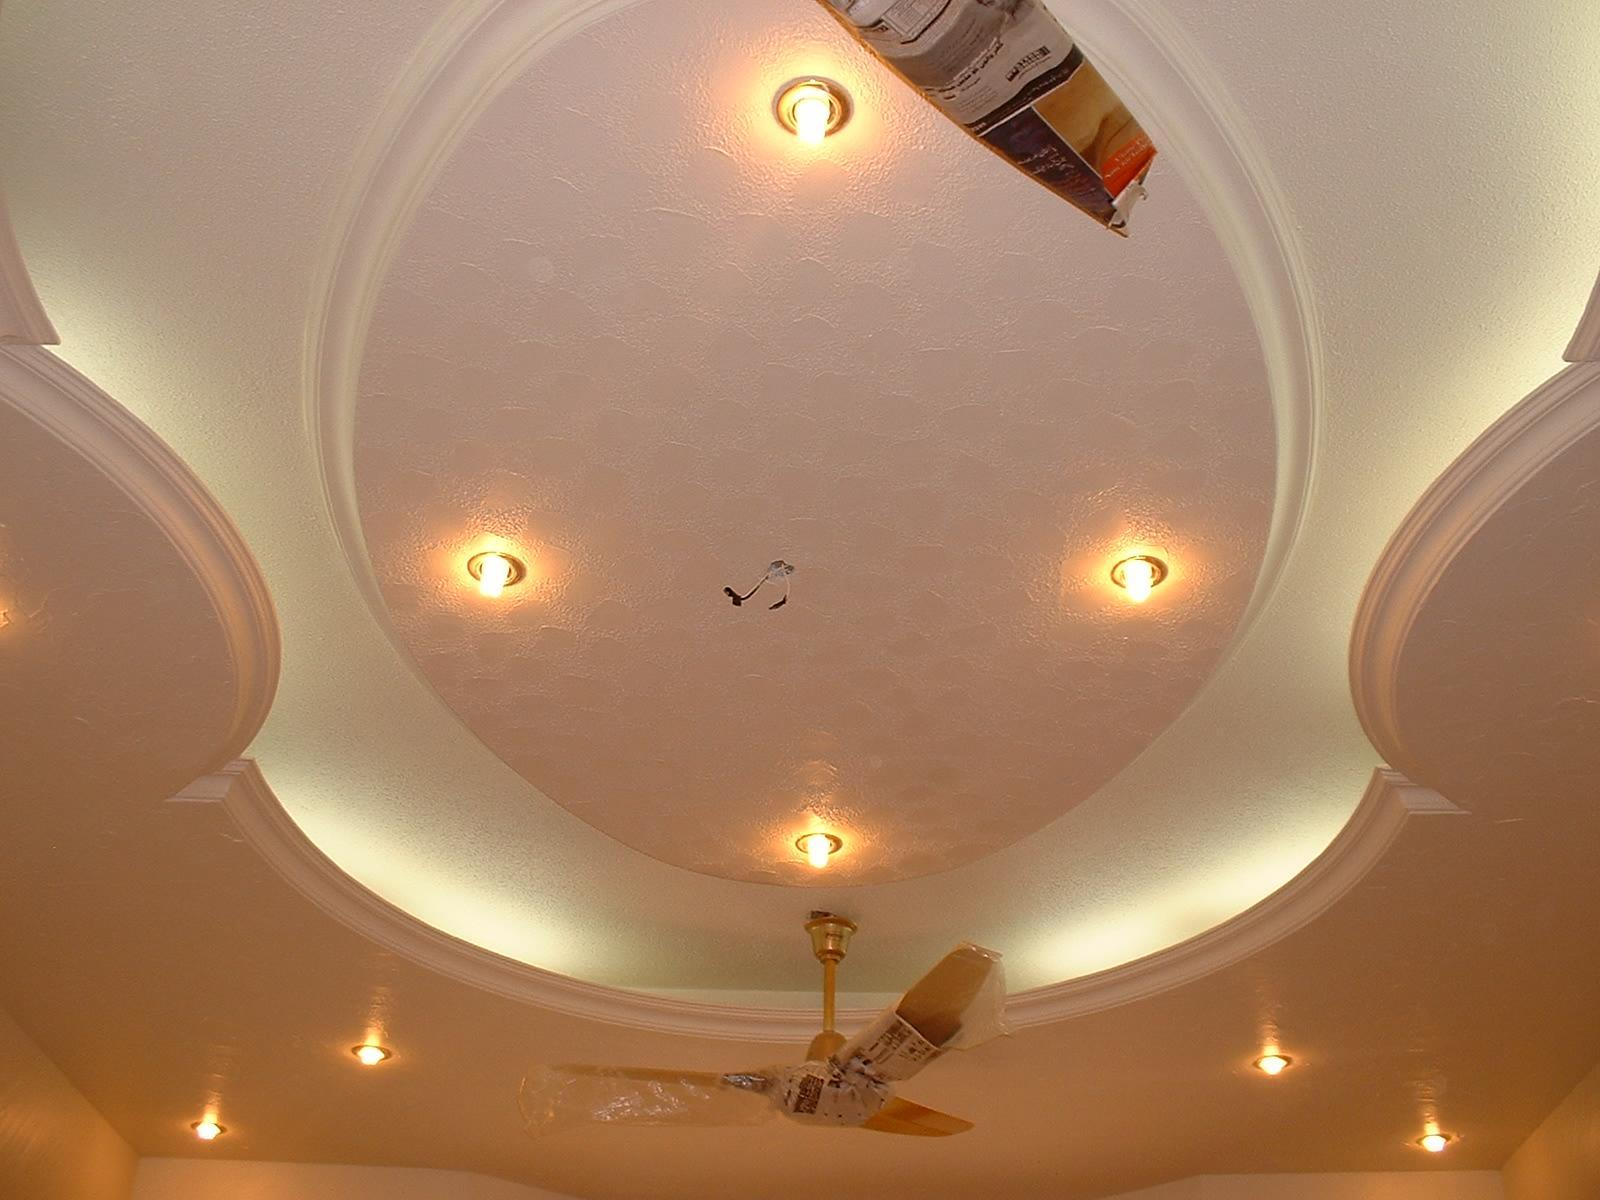 POP ceiling design with LED lights and Ceiling fan  : 1162010122331 from www.gharexpert.com size 1600 x 1200 jpeg 163kB